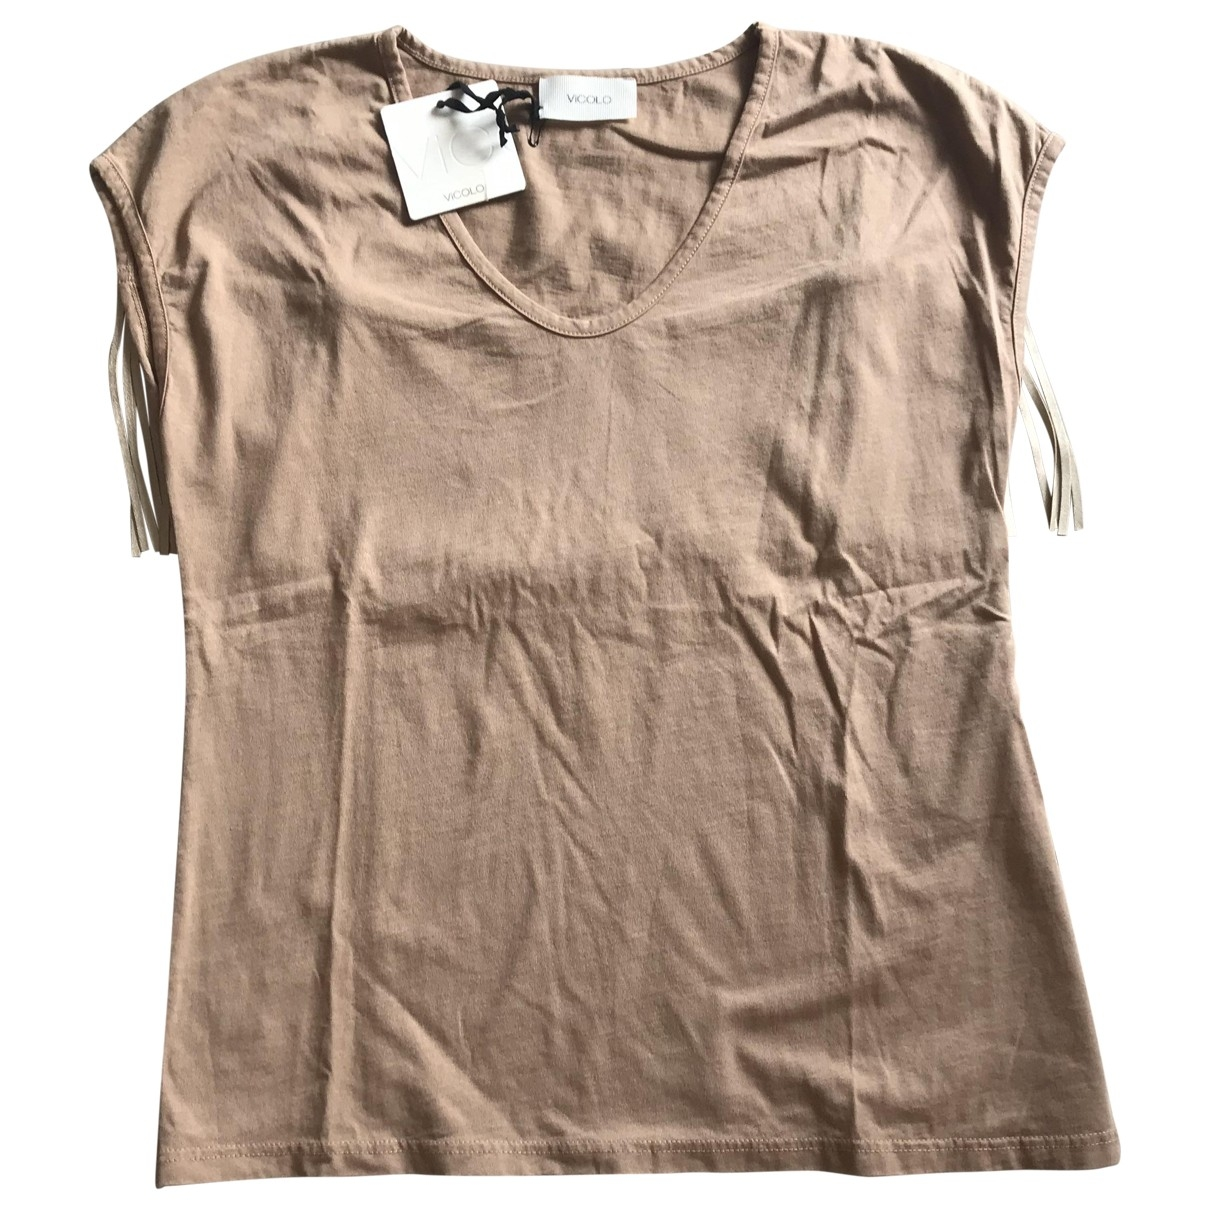 Vicolo \N Beige Cotton  top for Women One Size International